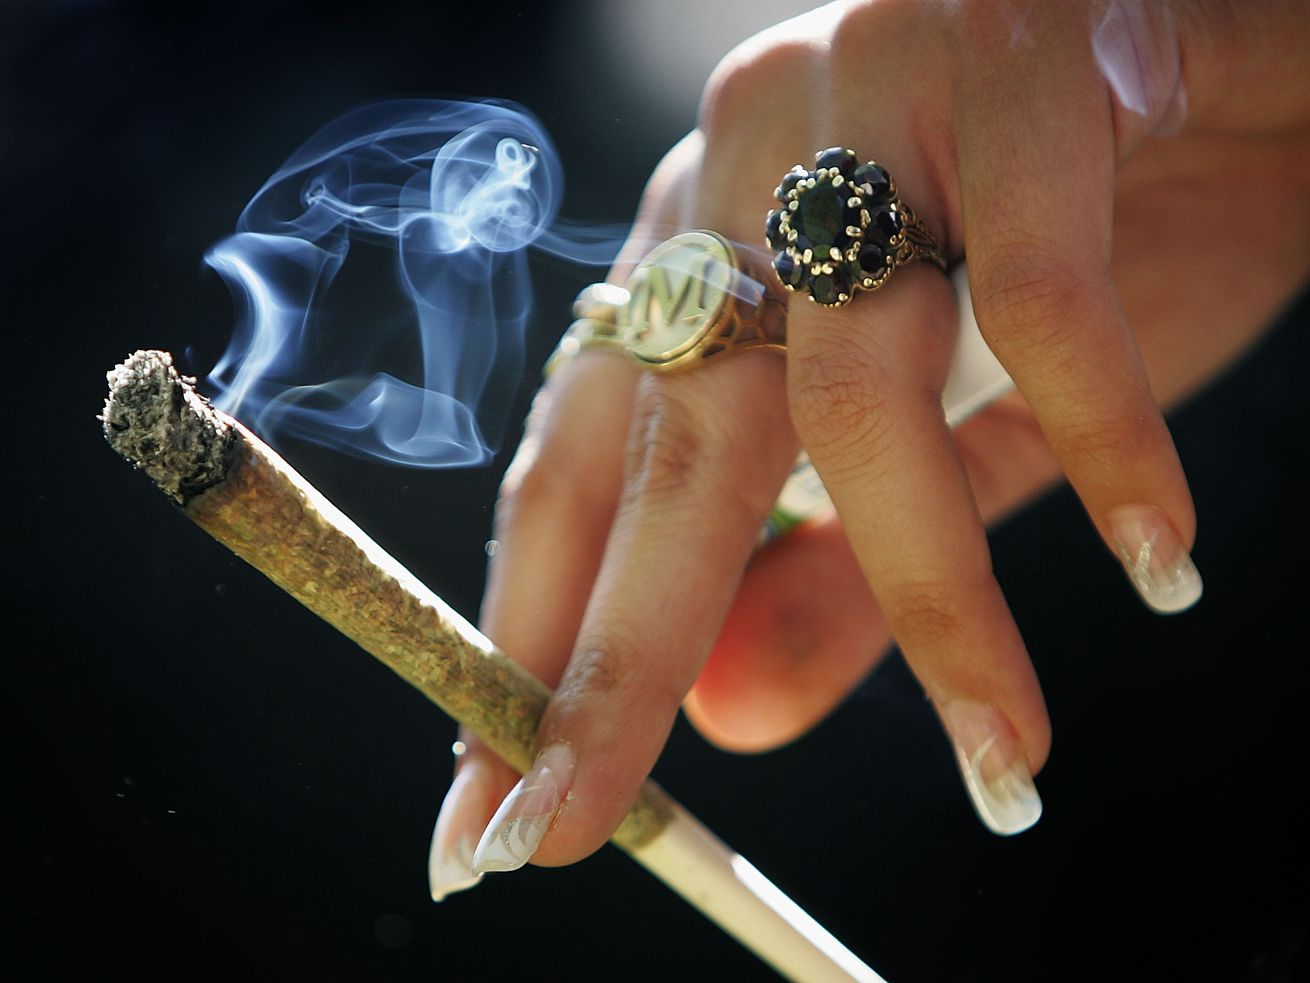 The sheriff of Kenosha County, Wisconsin, is warning residents that marijuana will remain illegal in the state come Jan. 1.